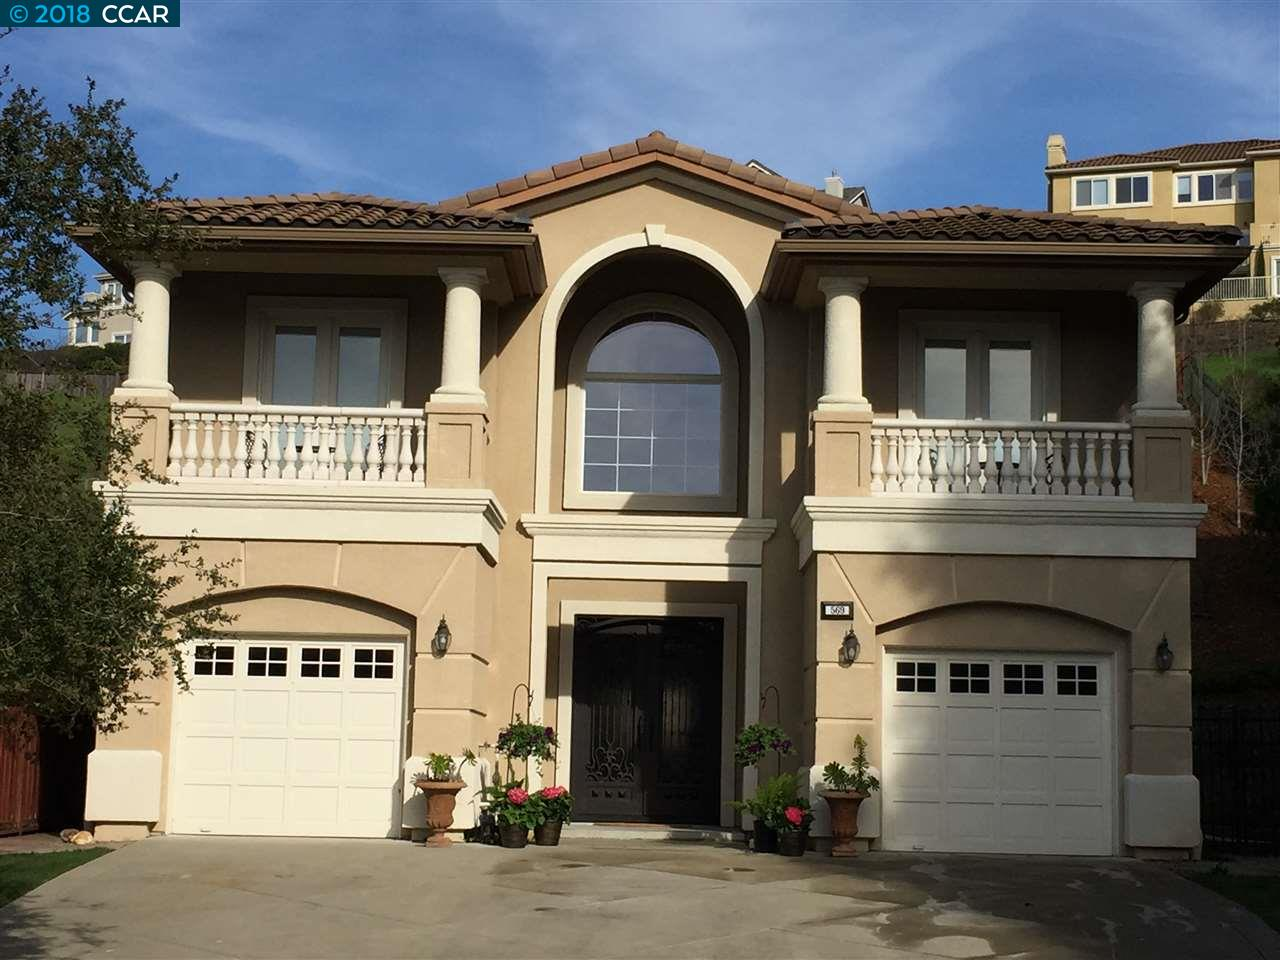 Casa Unifamiliar por un Venta en 569 Kingsbridge Court 569 Kingsbridge Court San Ramon, California 94583 Estados Unidos